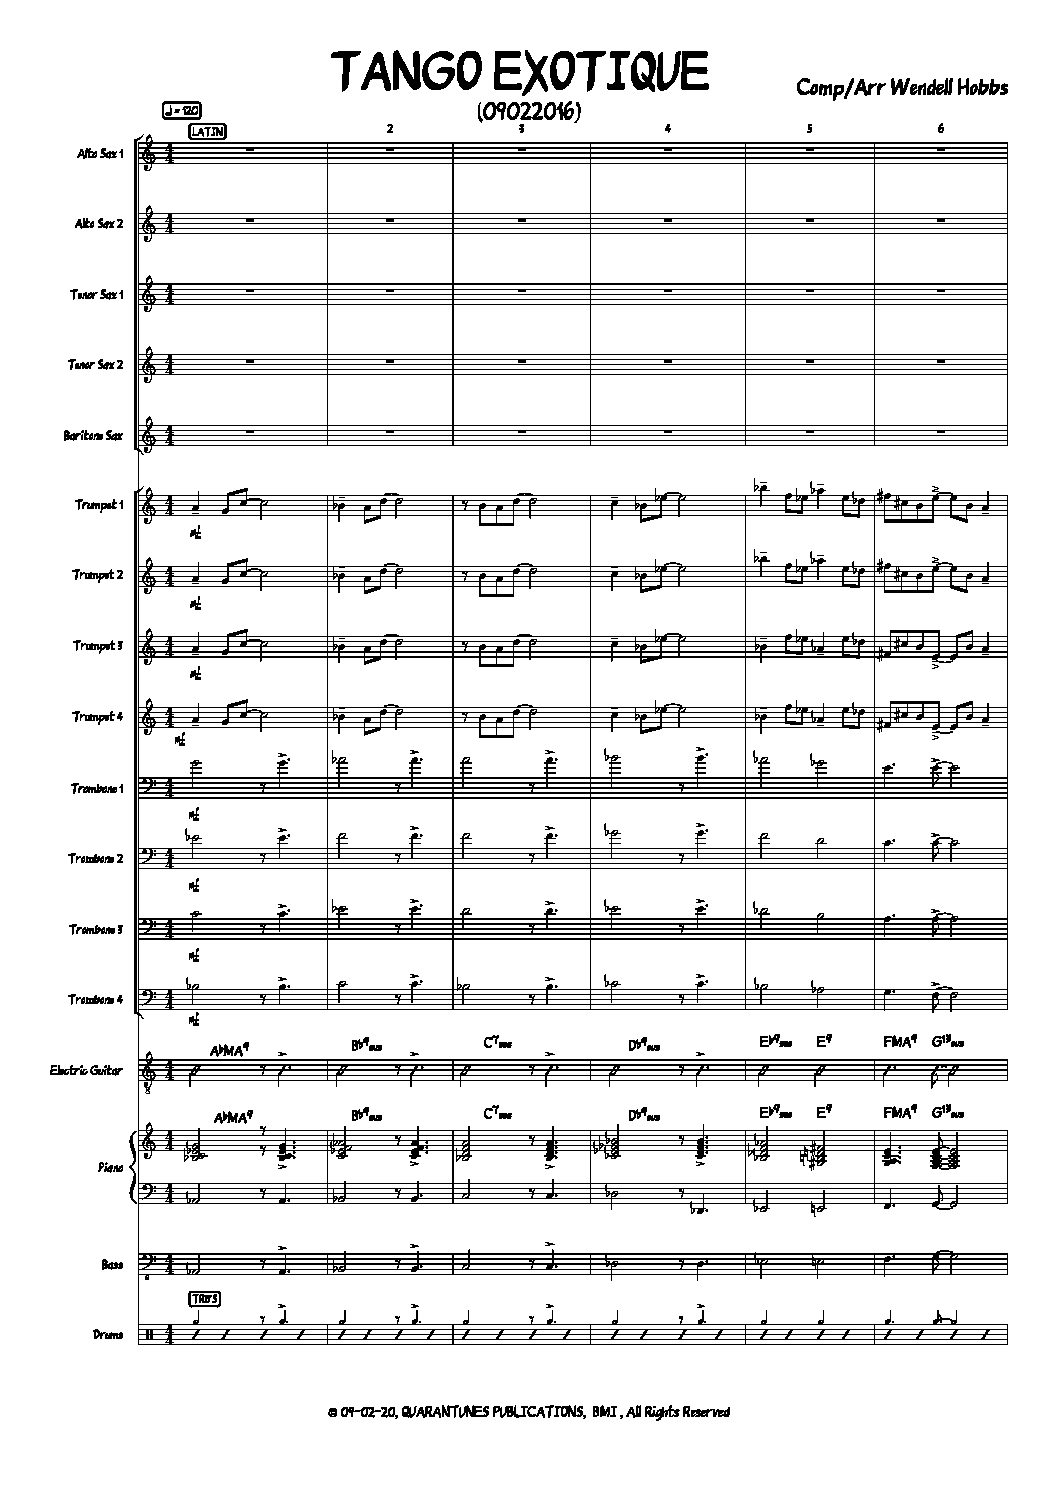 TANGO EXOTIQUE Score and Parts copy 3 pdf